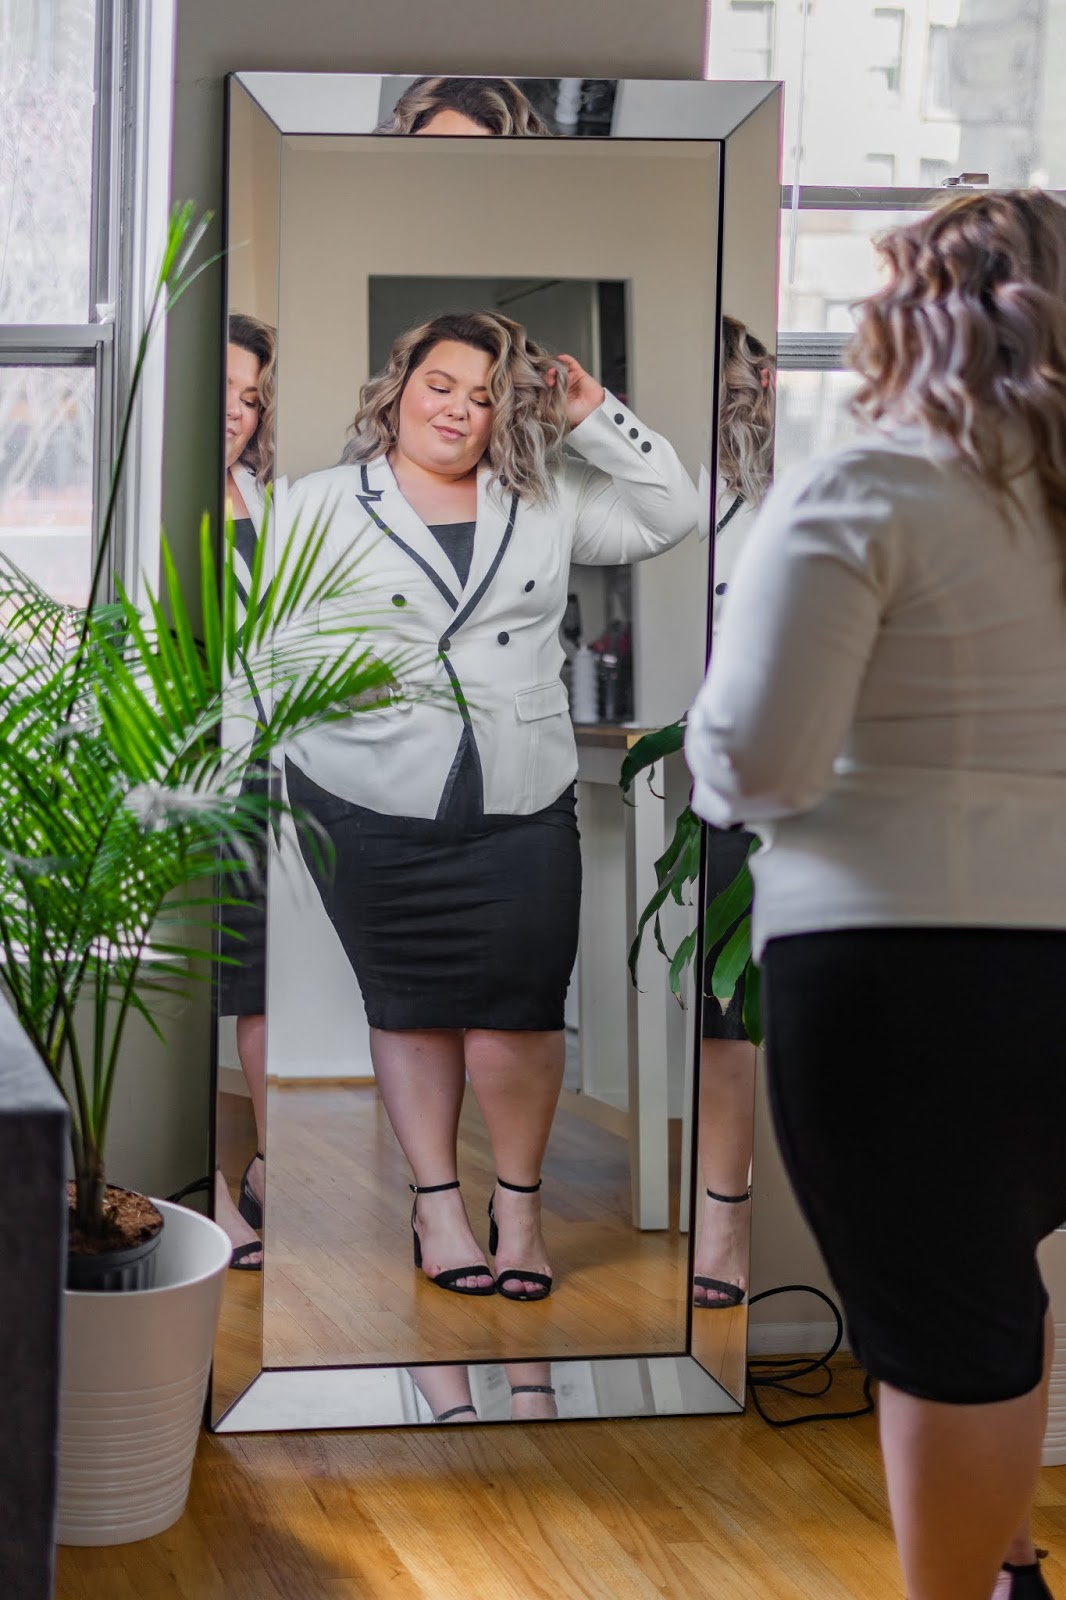 Chicago petite plus size fashion blogger, model, and youtuber reviews Mareé Pour Toi and shares her favorite plus size work wear clothing.